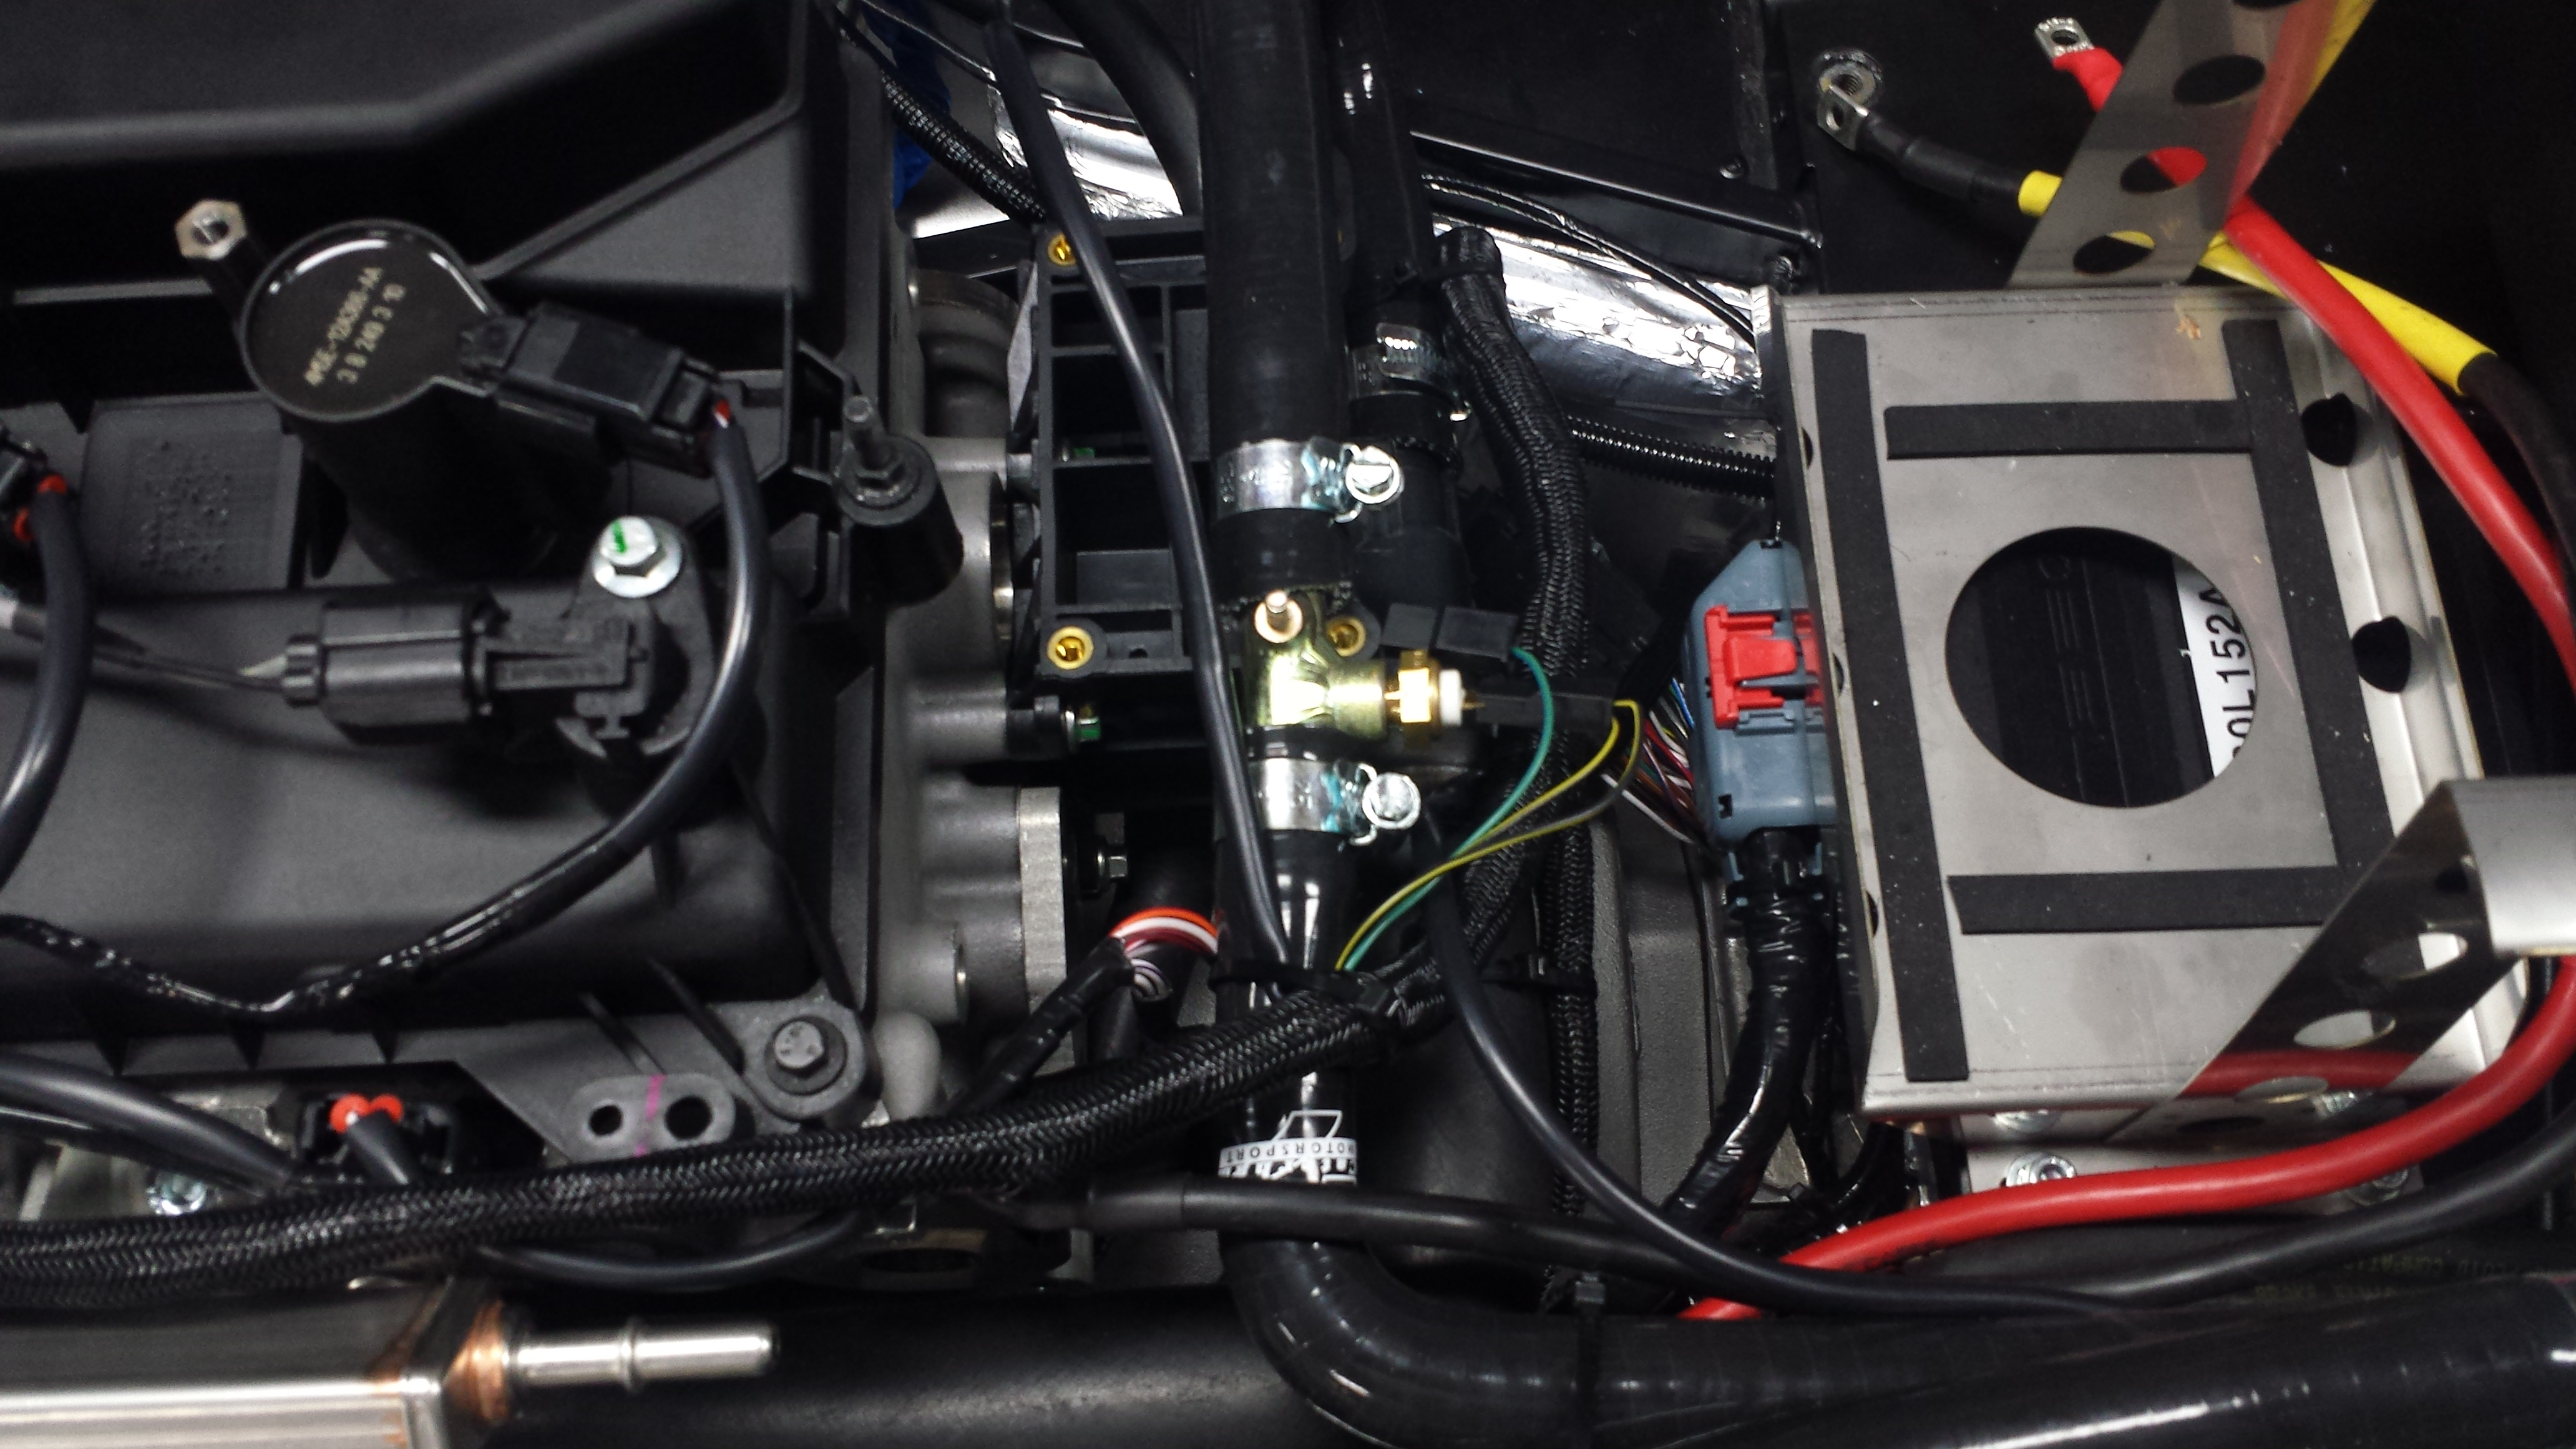 Wiring loom route on top of engine